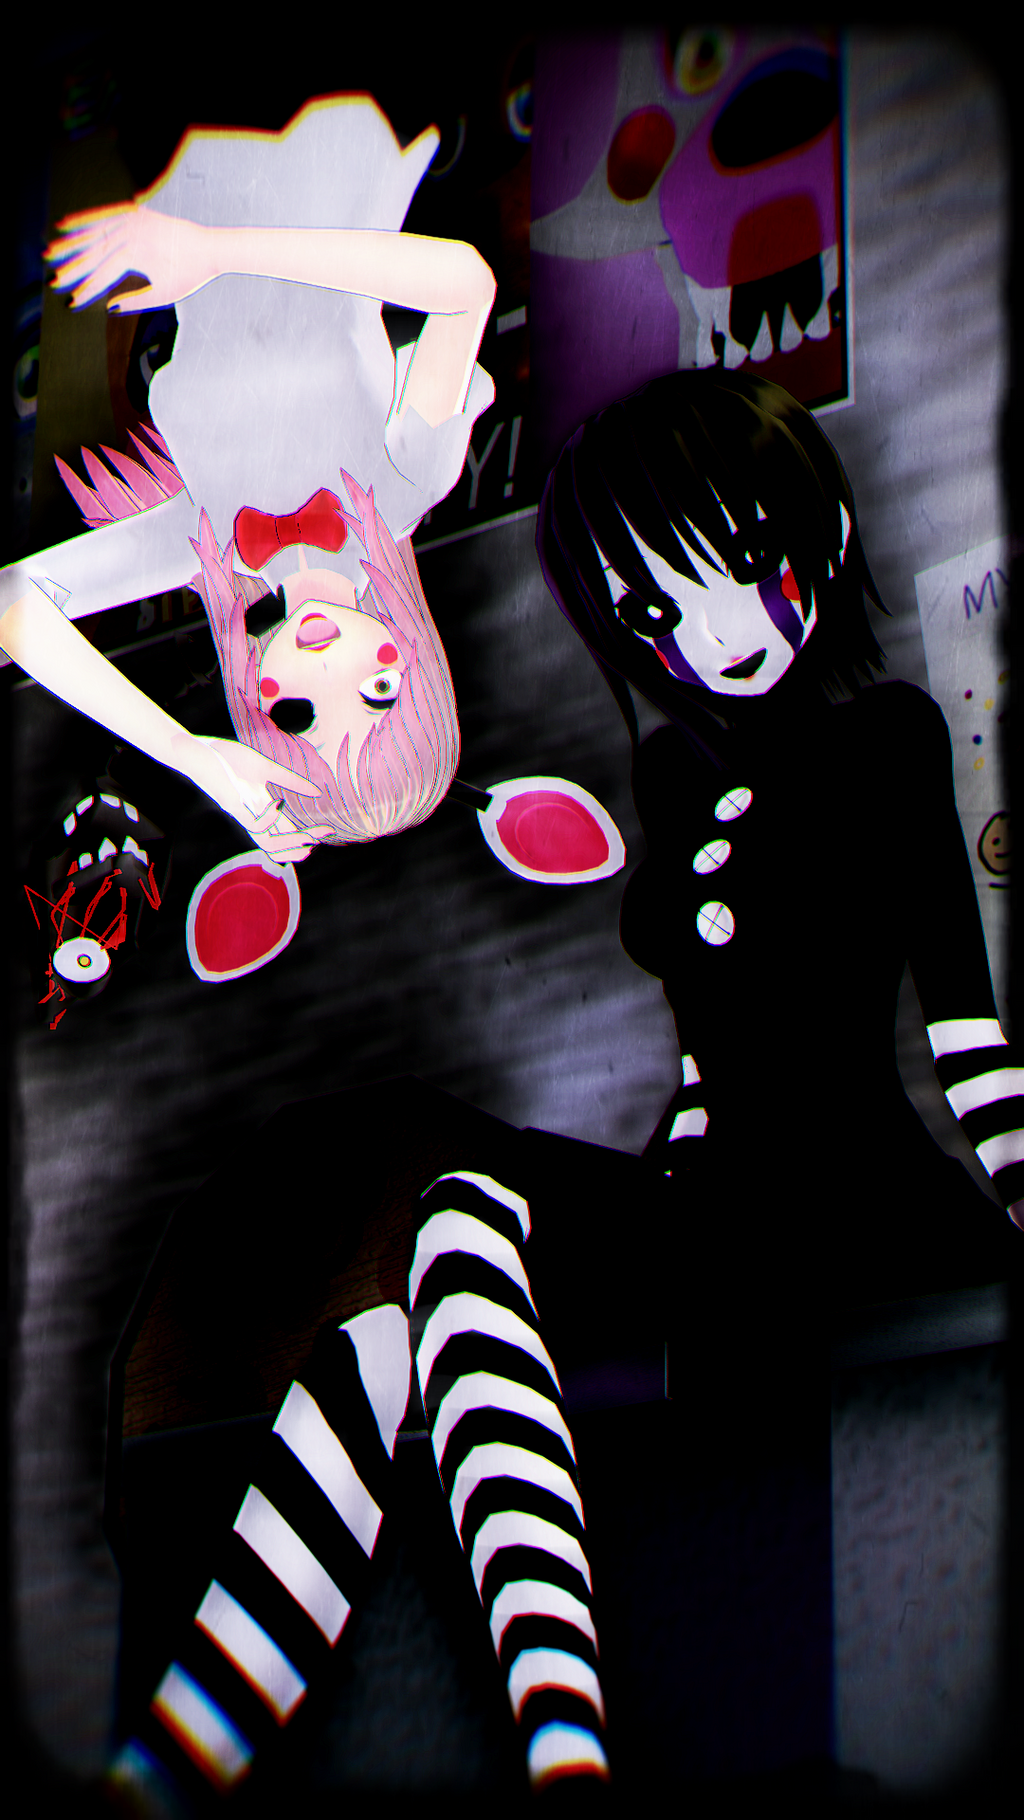 The puppet and the mangle by akafudo on deviantart